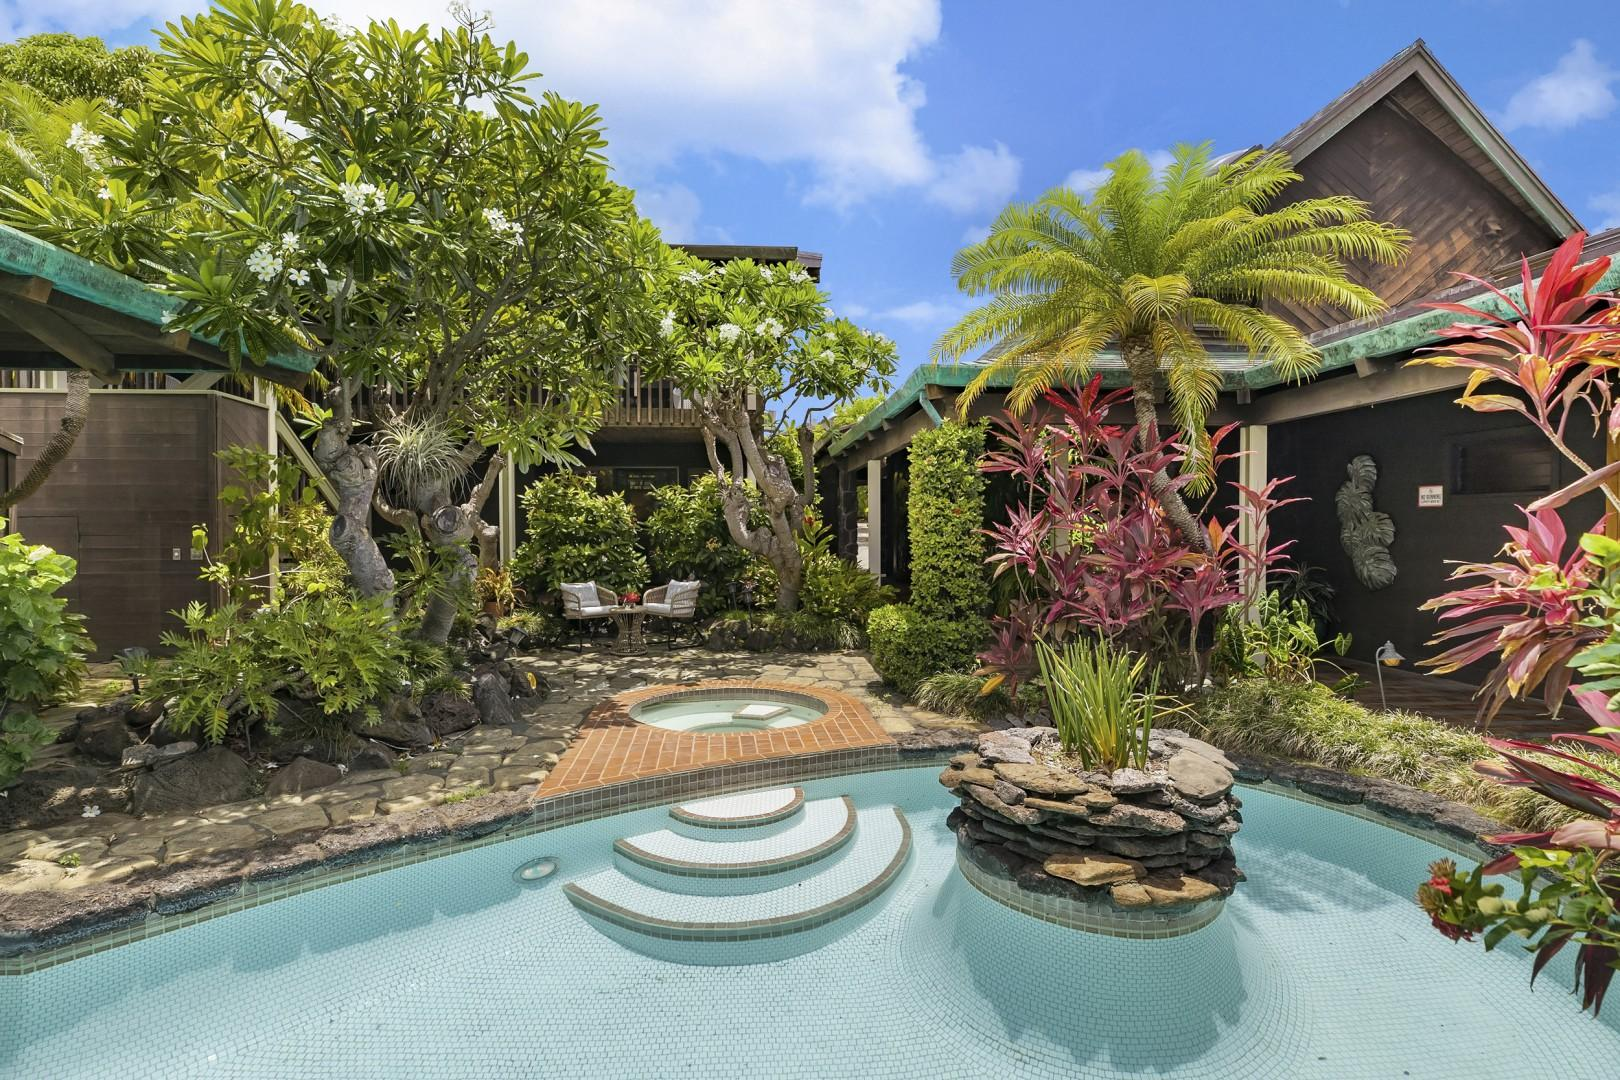 Home is centered around a large courtyard with lush tropical landscaping and resort-style pool and jacuzzi.